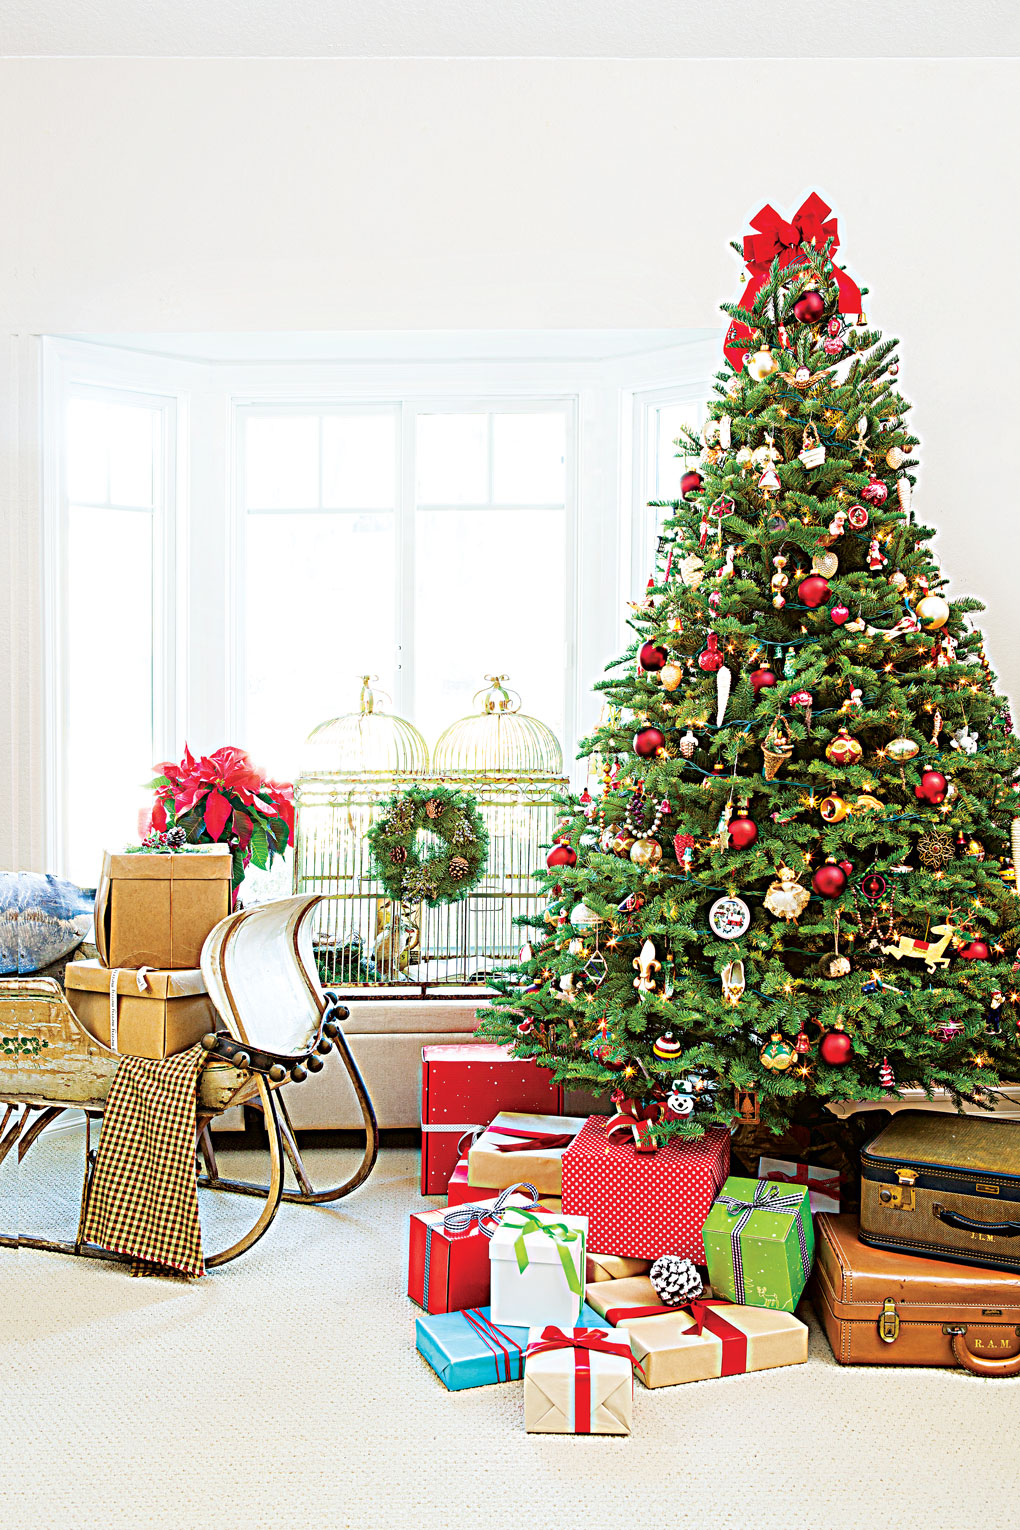 A large and lovely decorated Christmas tree topped with a red bow and surrounded by vintage suitcases and wrapped gifts all next to a vintage sleigh.